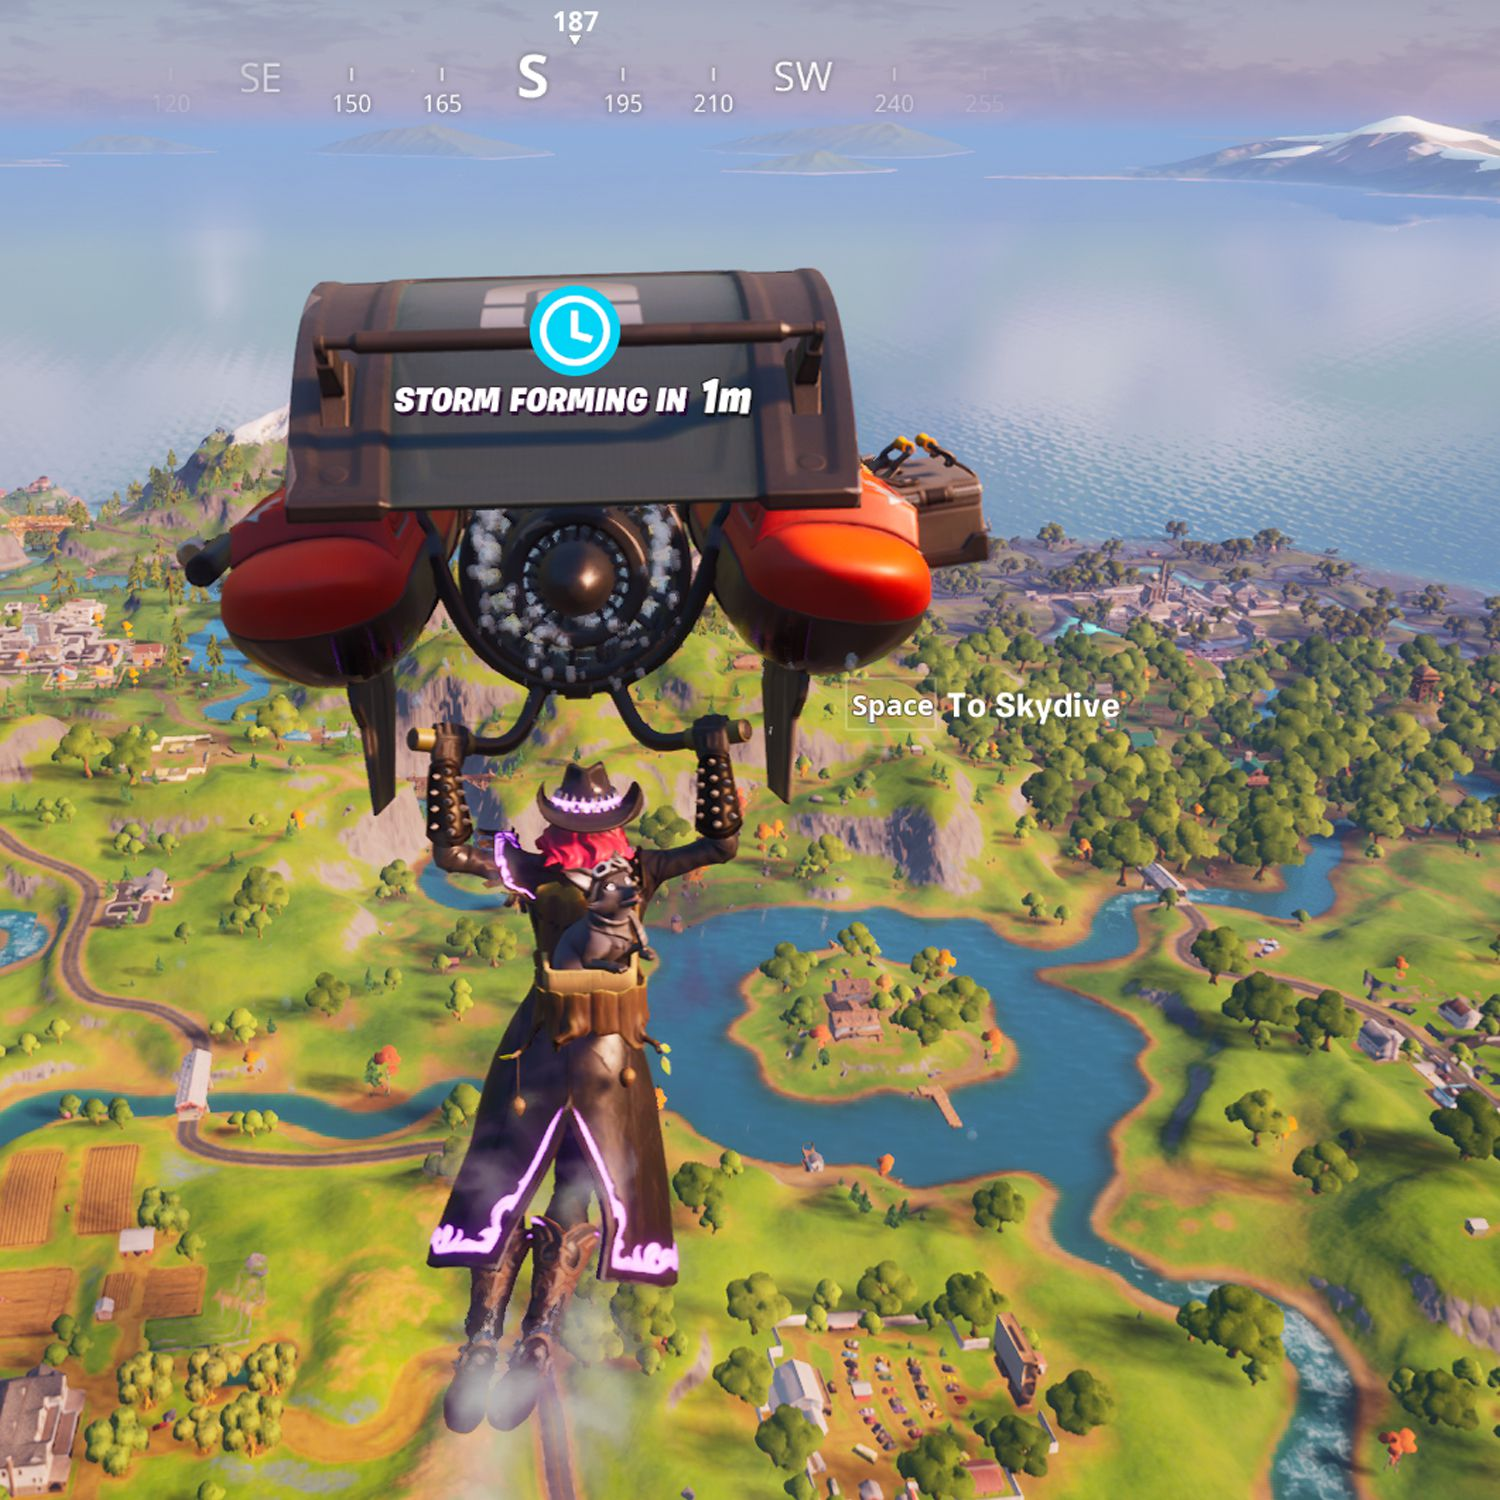 Fortnite Pc Release Date Battle Royal Fortnite Battle Royale Review Back In The Saddle With A Fun New Season